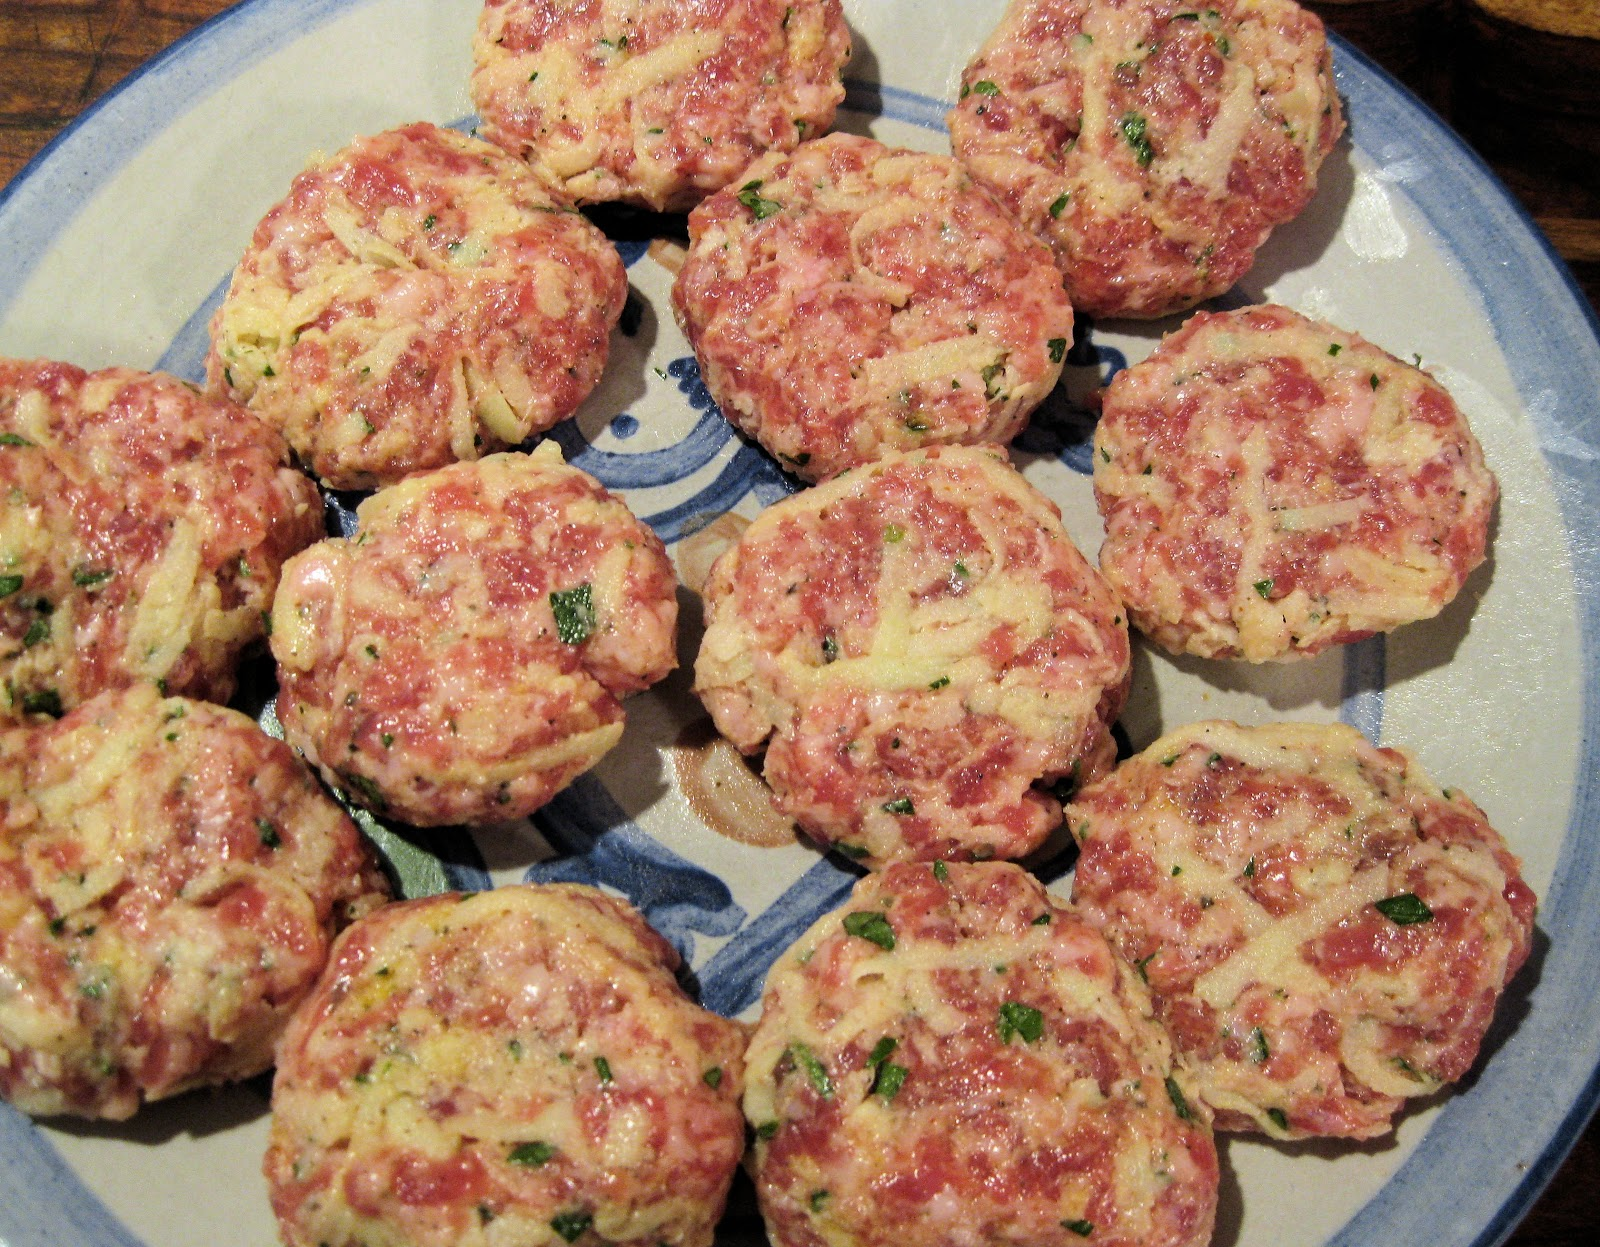 Kristen Kennedy - May Way, Every Day!: Apple and Sausage Patties